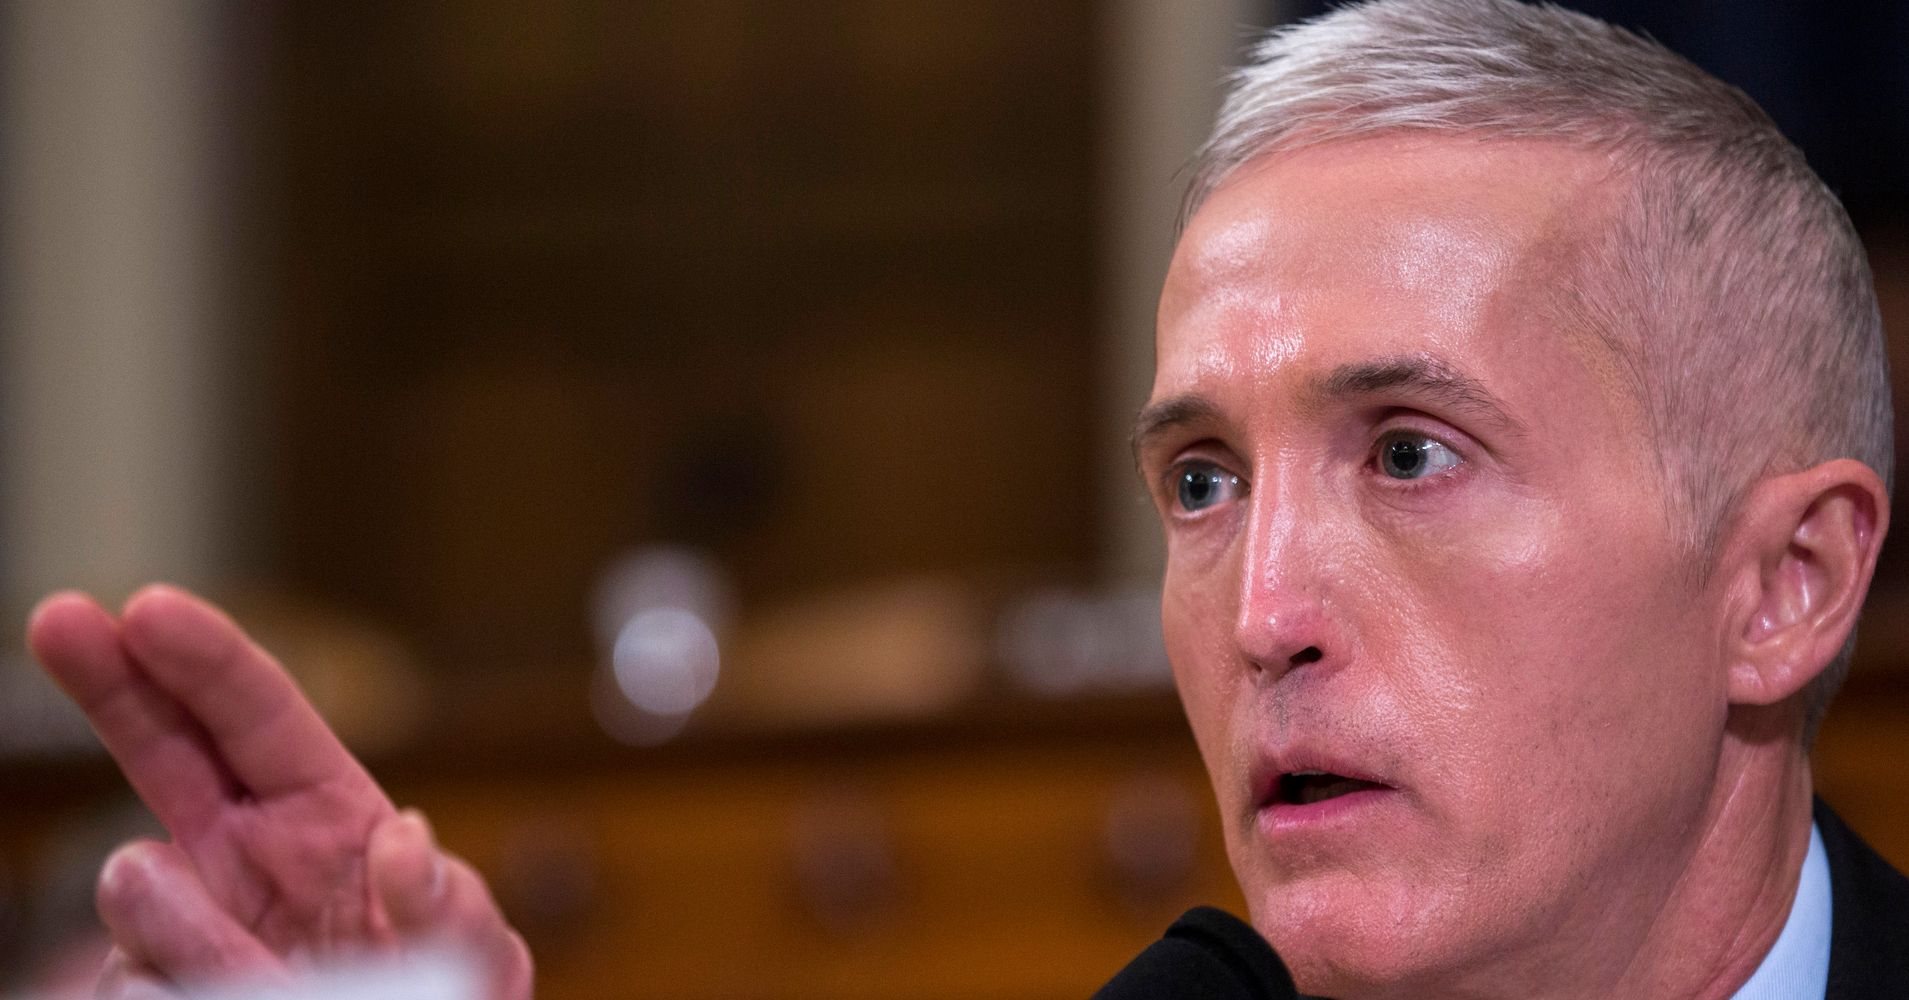 Rep. Trey Gowdy To Trump's Lawyer: If You Have An Innocent Client, 'Act Like It'